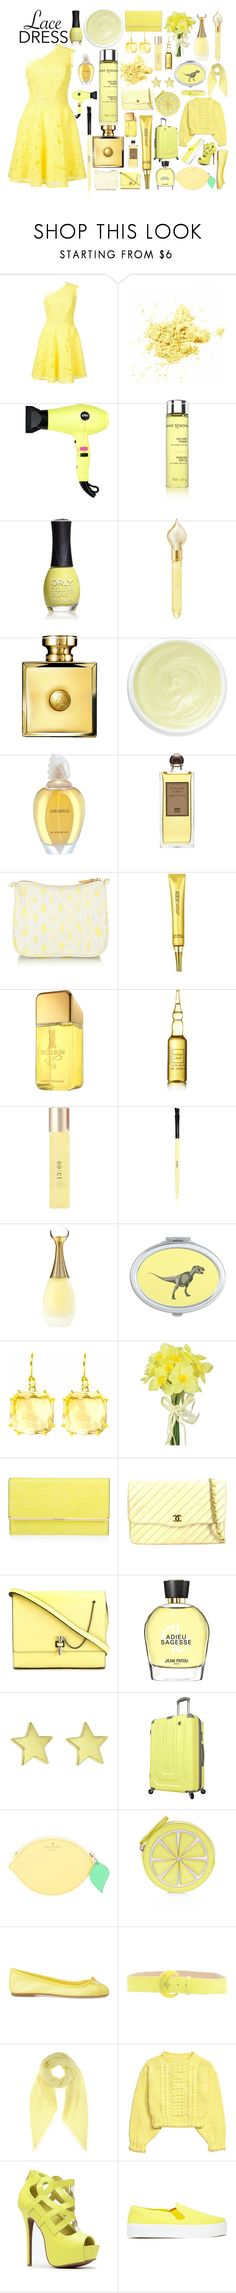 """""""Sem título #131"""" by tabata-sachetti ❤ liked on Polyvore featuring Monique Lhuillier, Eva NYC, Anne Semonin, ORLY, The Merchant Of Venice, Versace, Eve Lom, Givenchy, Serge Lutens and AERIN"""